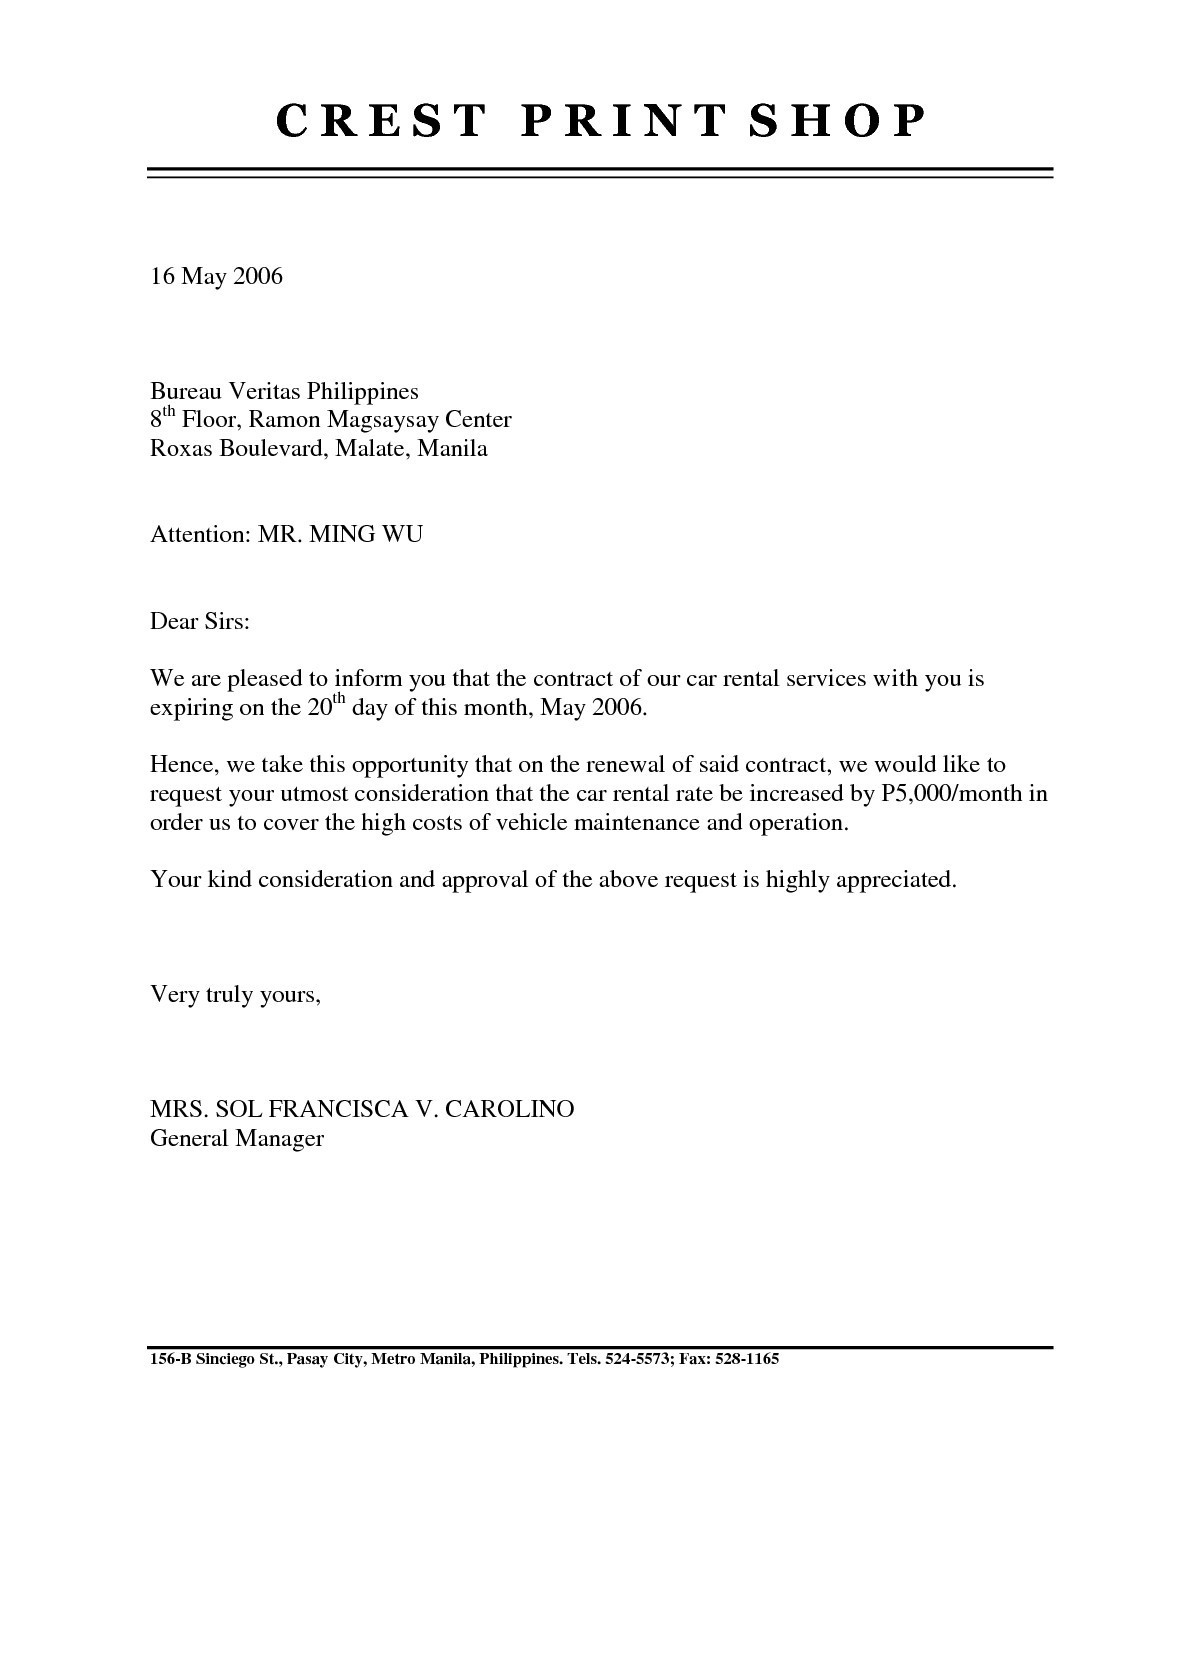 rental letter template example-rent agreement letter template 7-q